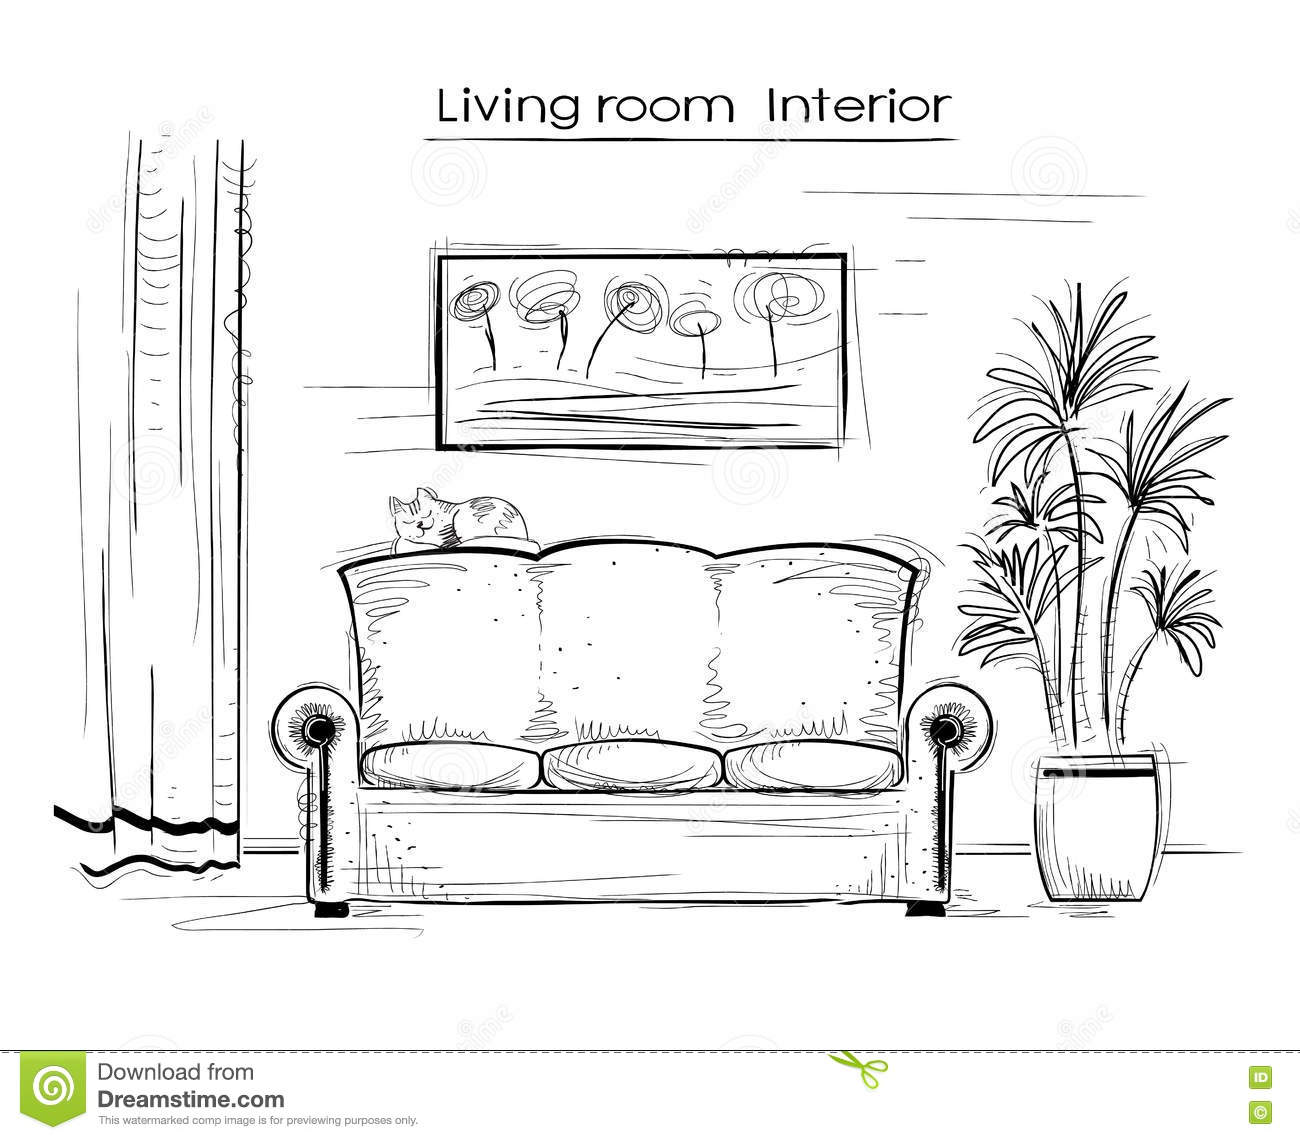 Sketchy Interior Illustration Of Living Room. Vector Hand